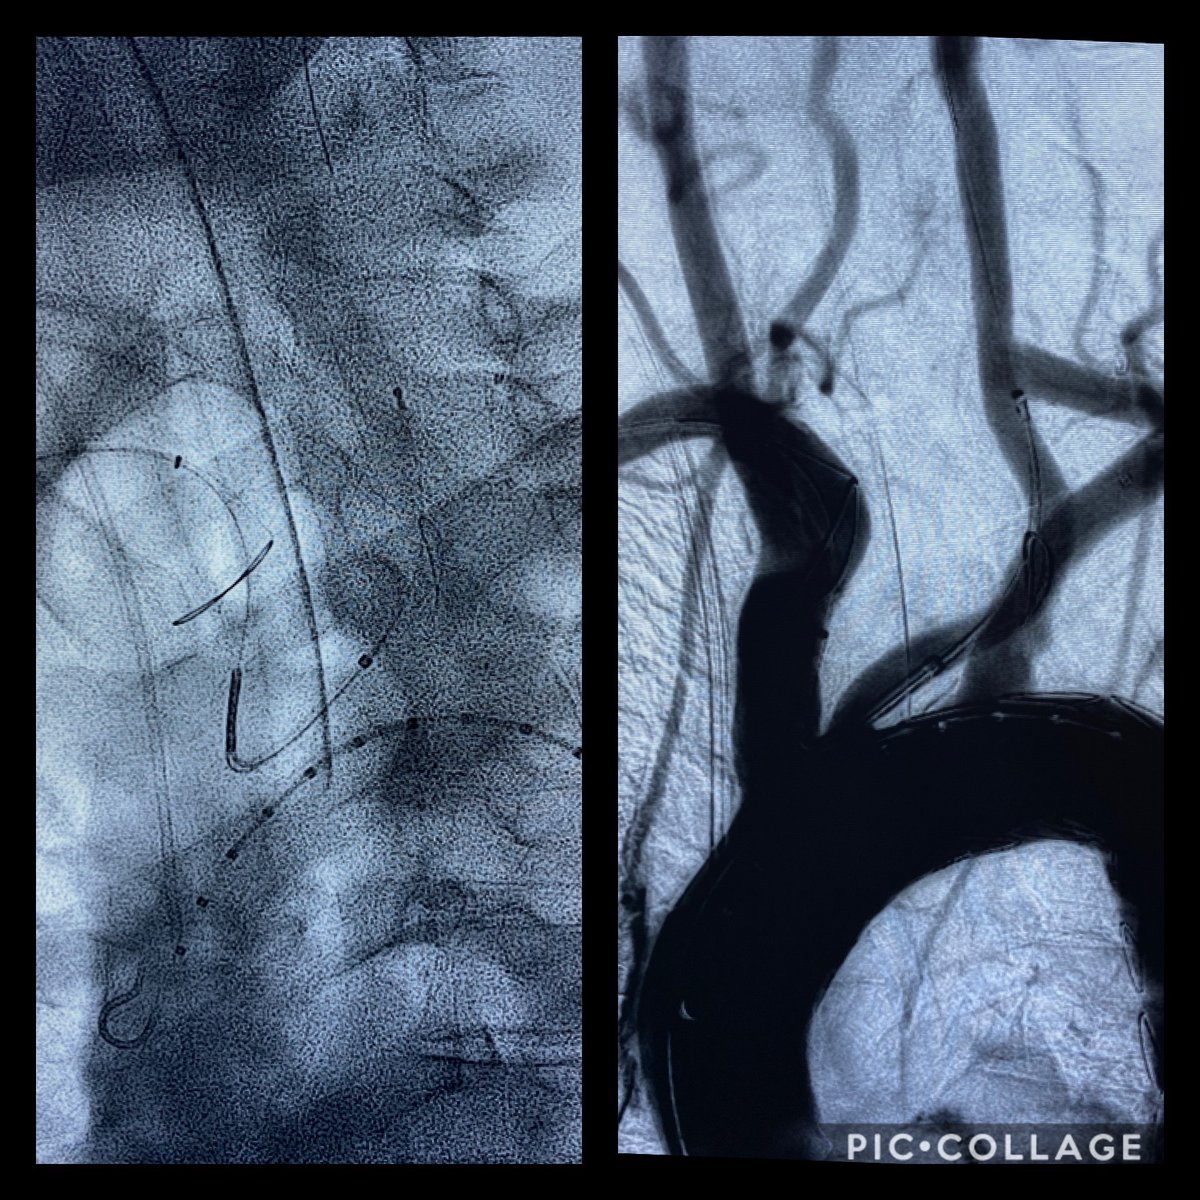 85 year old man, #embolization #stroke from #aortic #thrombus around left carotid and #subclavian, fixed with left #carotid subclavian, #Terumo relay, and #Boston scientific #sentinel #embolic protection device, that was a #lifesaver.pic.twitter.com/Djd1TLSEke